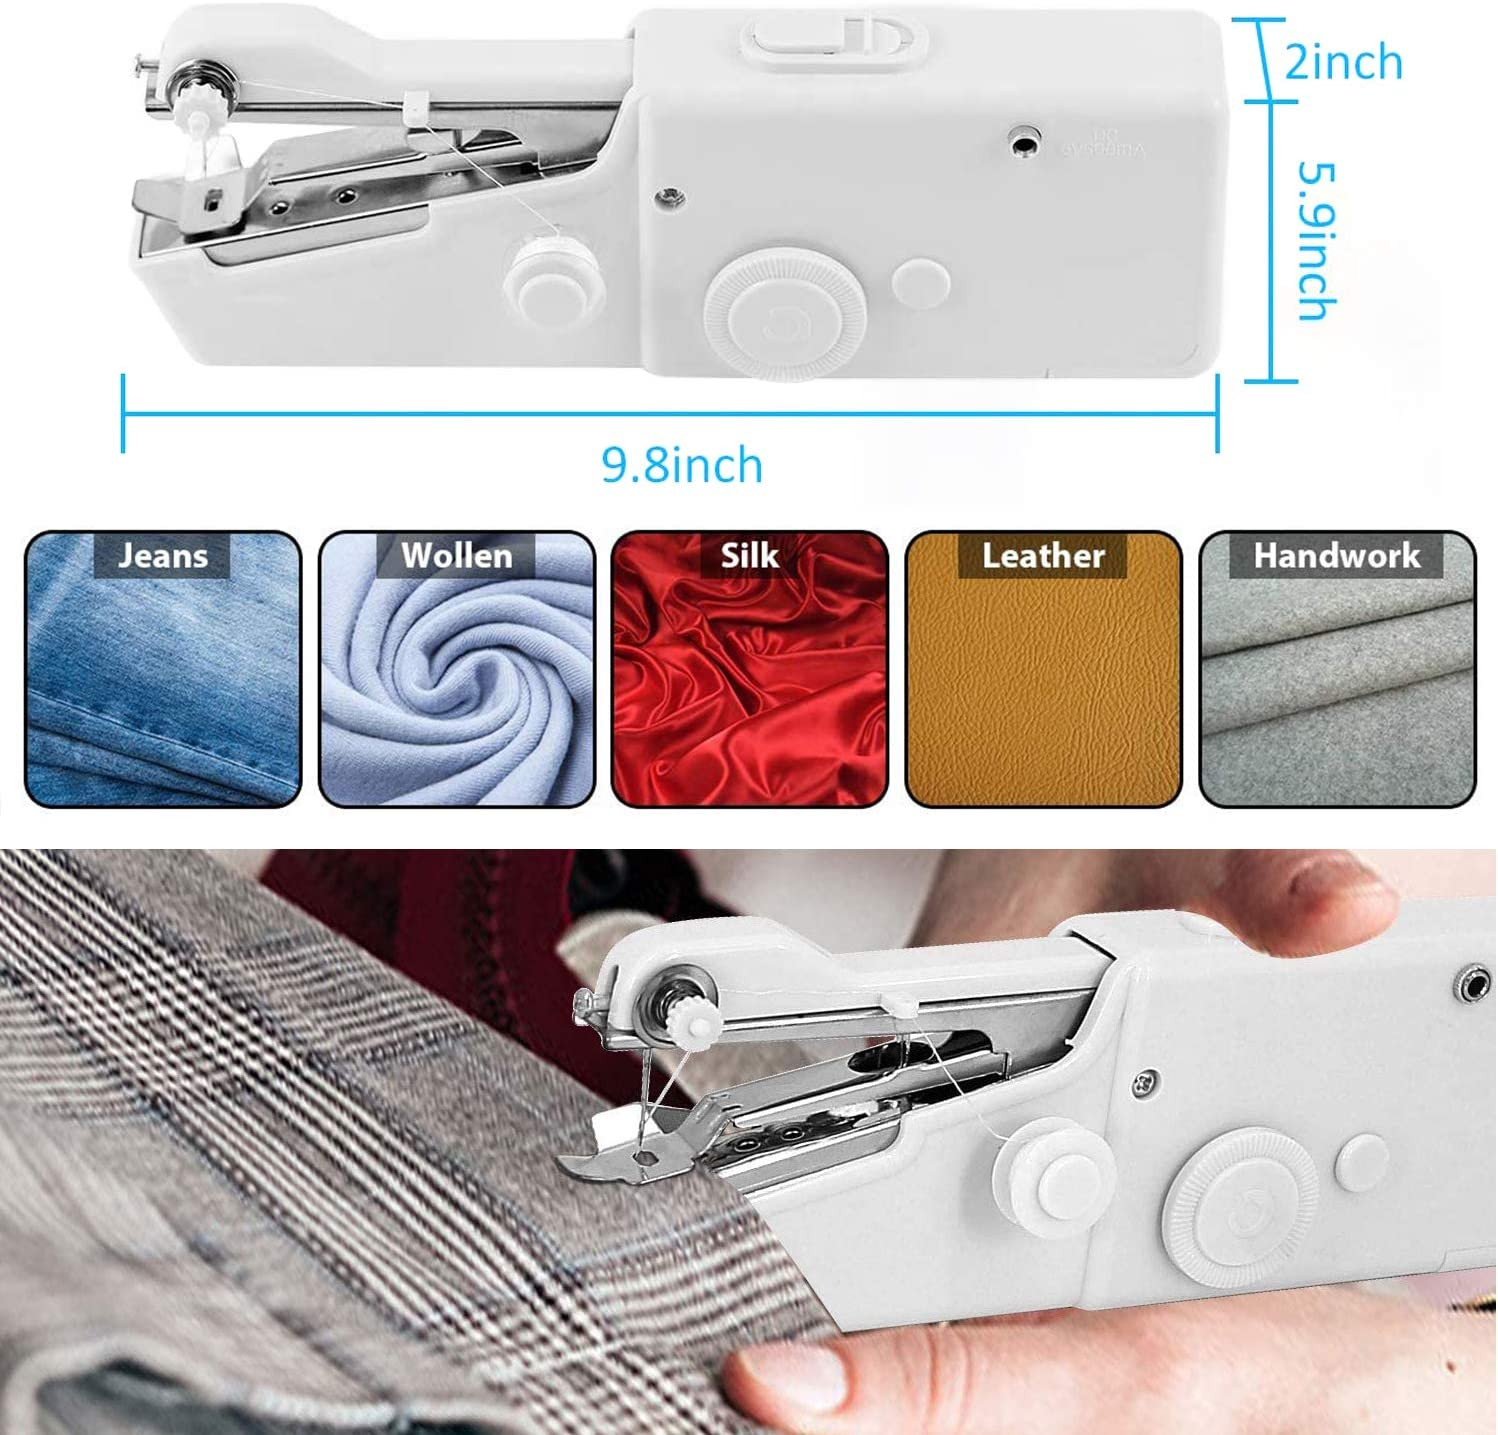 Sewing Machine for Beginners Quick Handy Stitch for Fabric Mini Portable Electric Sewing Machine Kids Cloth Hand Sewing Machine Clothing